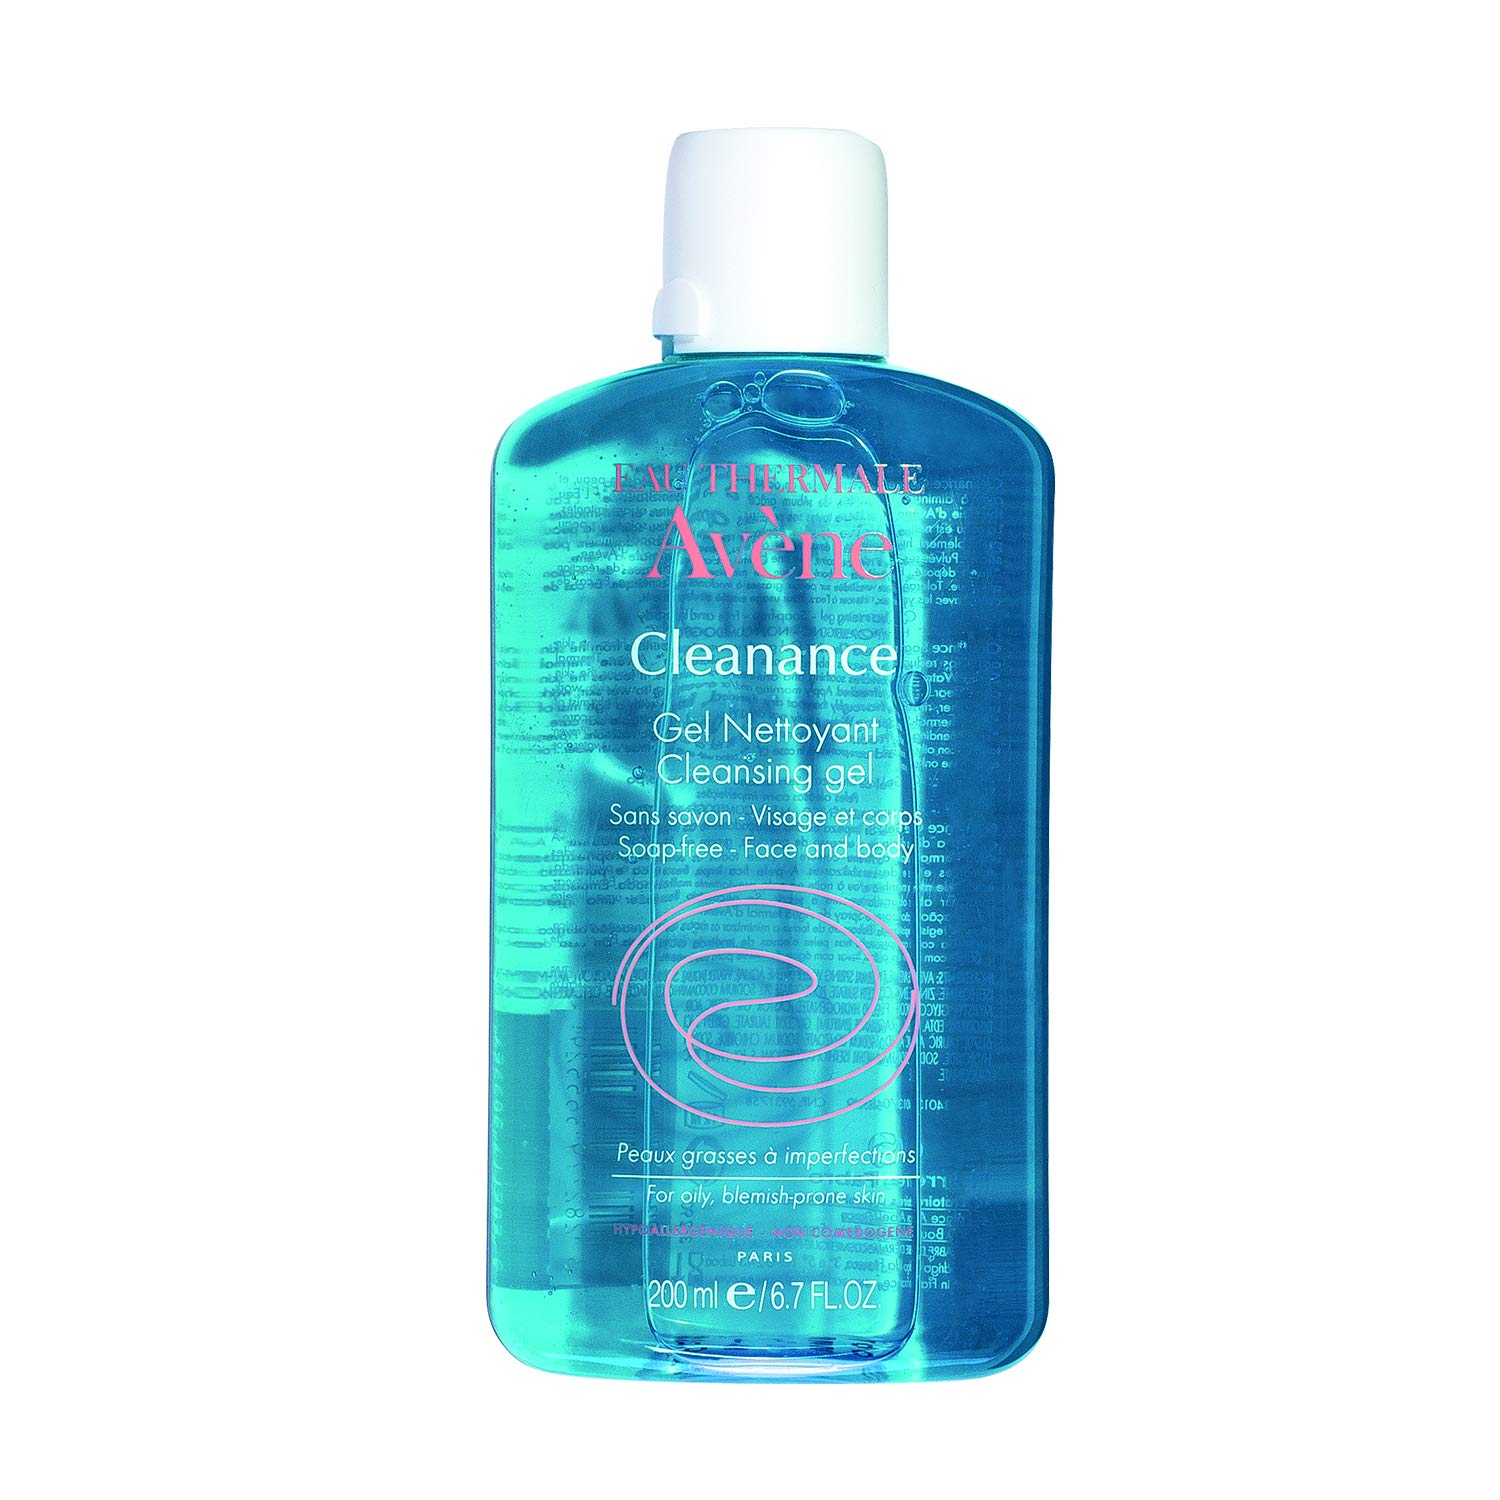 Eau Thermale Avene Cleanance Cleansing Gel Soap Free Cleanser for Acne Prone, Oily, Face & Body, 6.7 oz. by Eau Thermale Avène